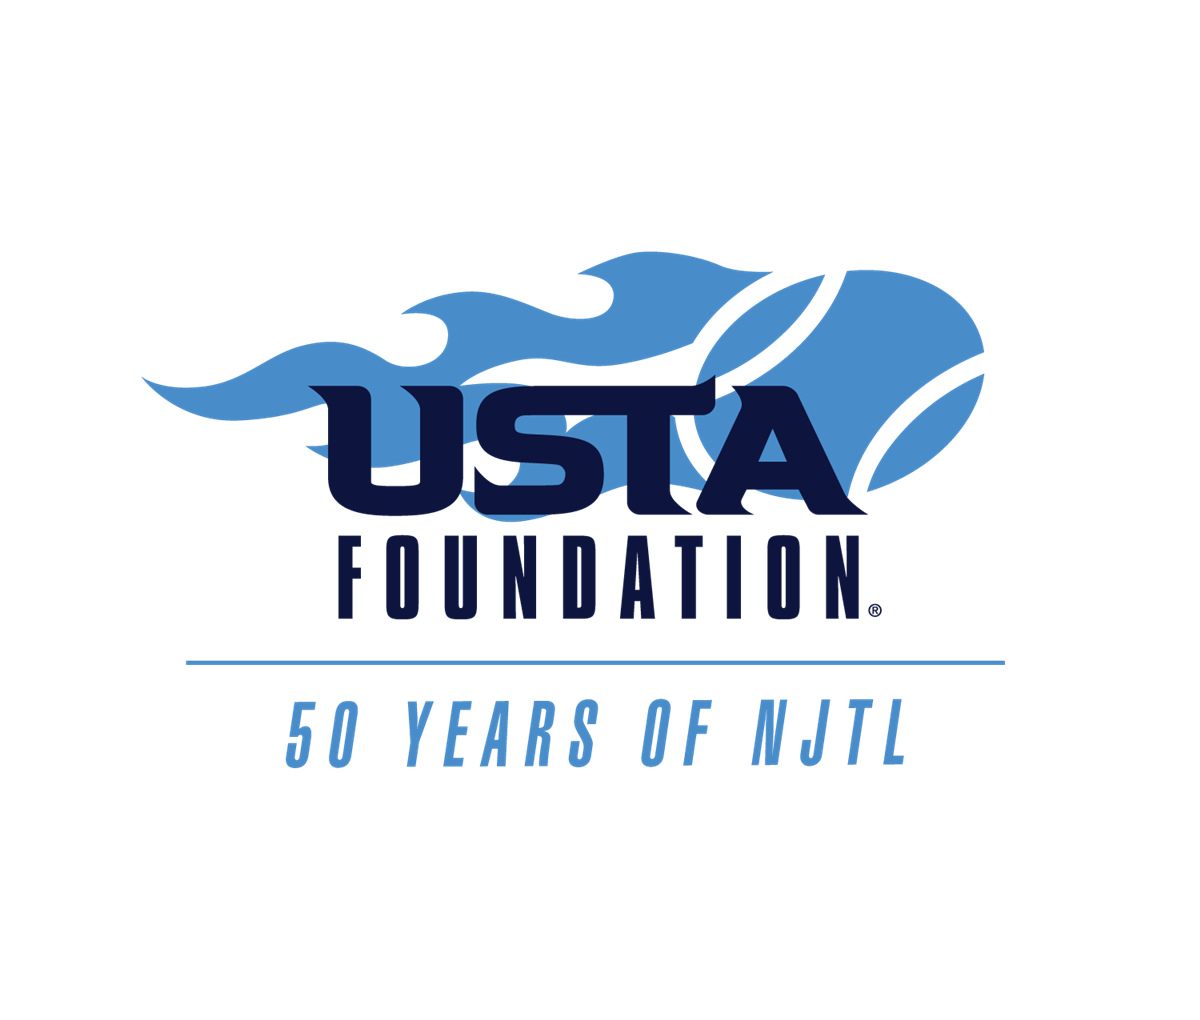 USTA_Foundation_50